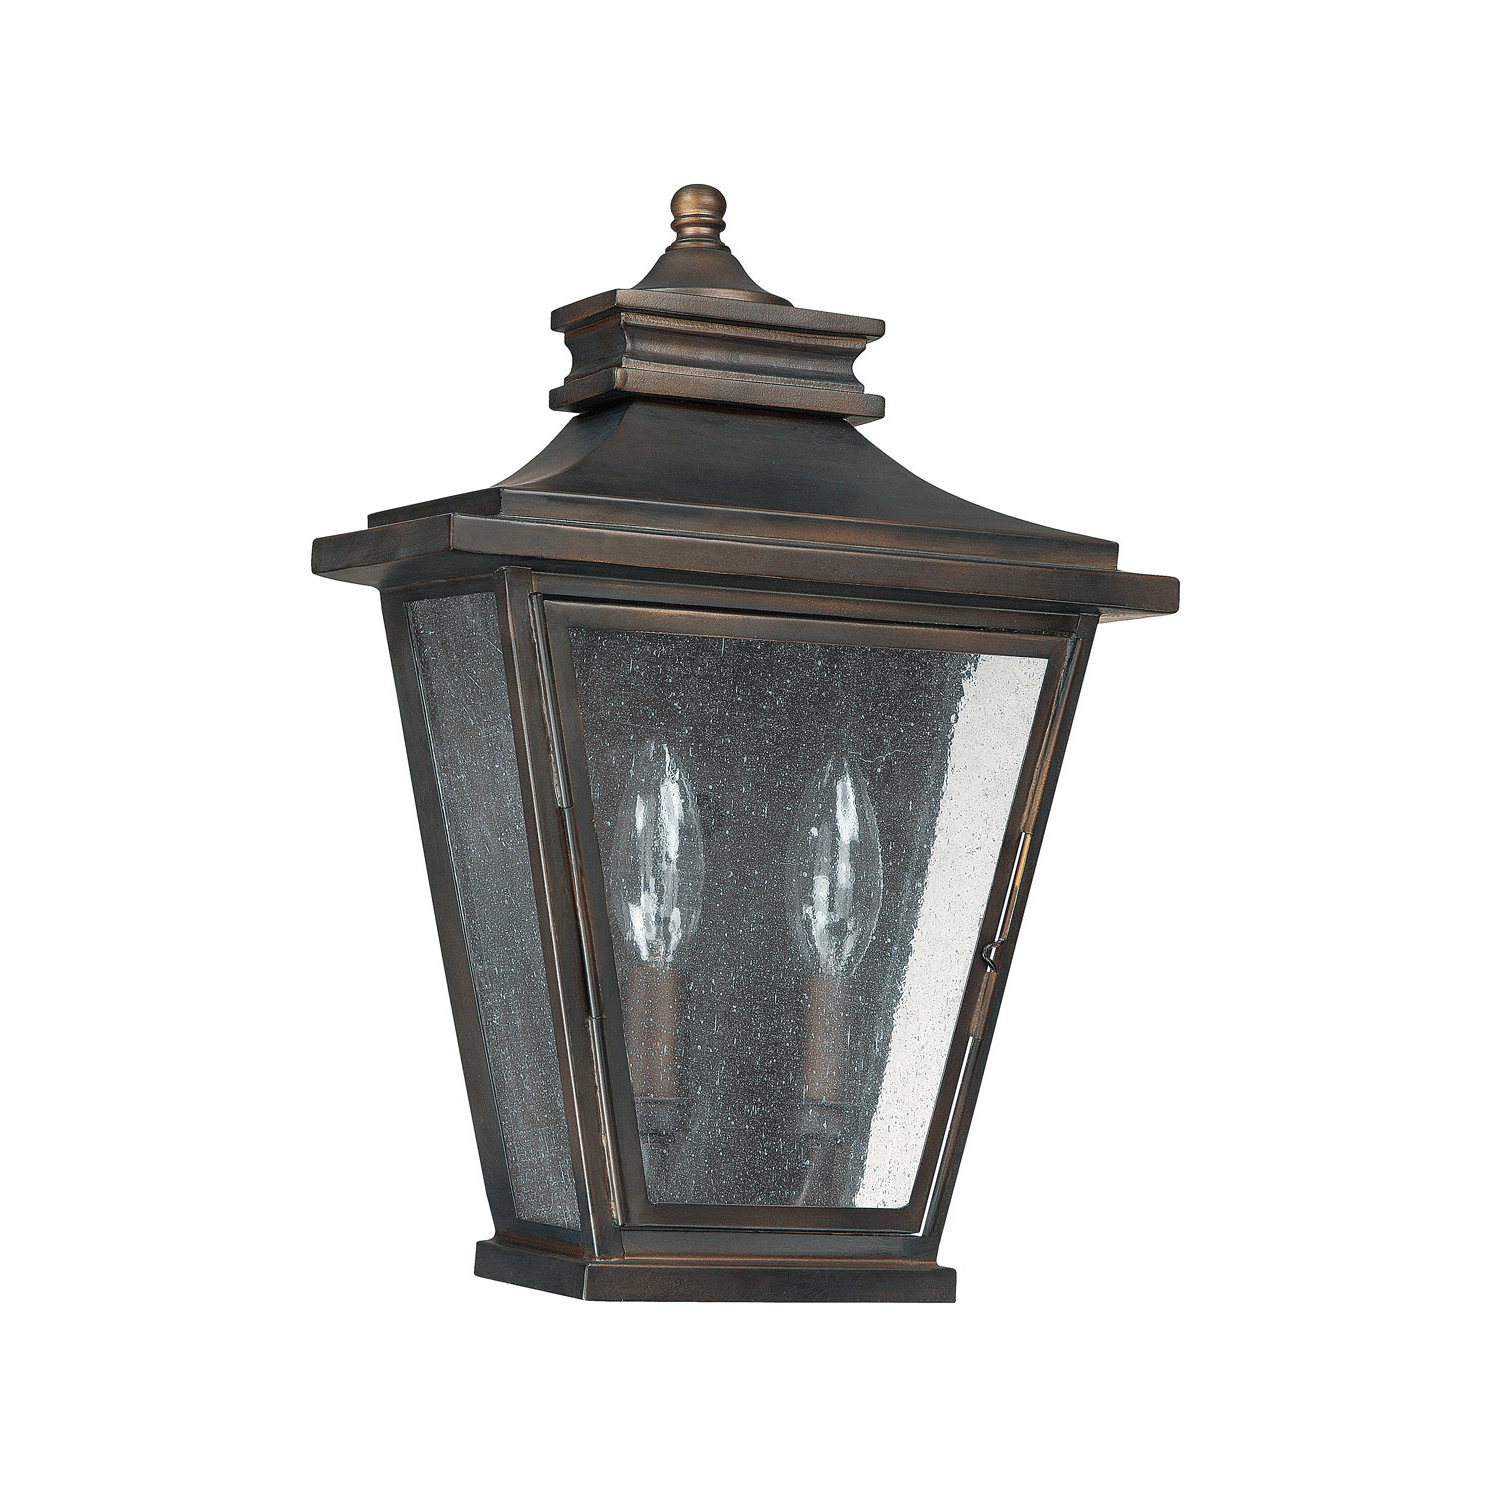 Capital Lighting 9460 Bronze Astor 2 Light Ada Compliant For Preferred Chicopee 2 – Bulb Glass Outdoor Wall Lanterns (View 13 of 15)